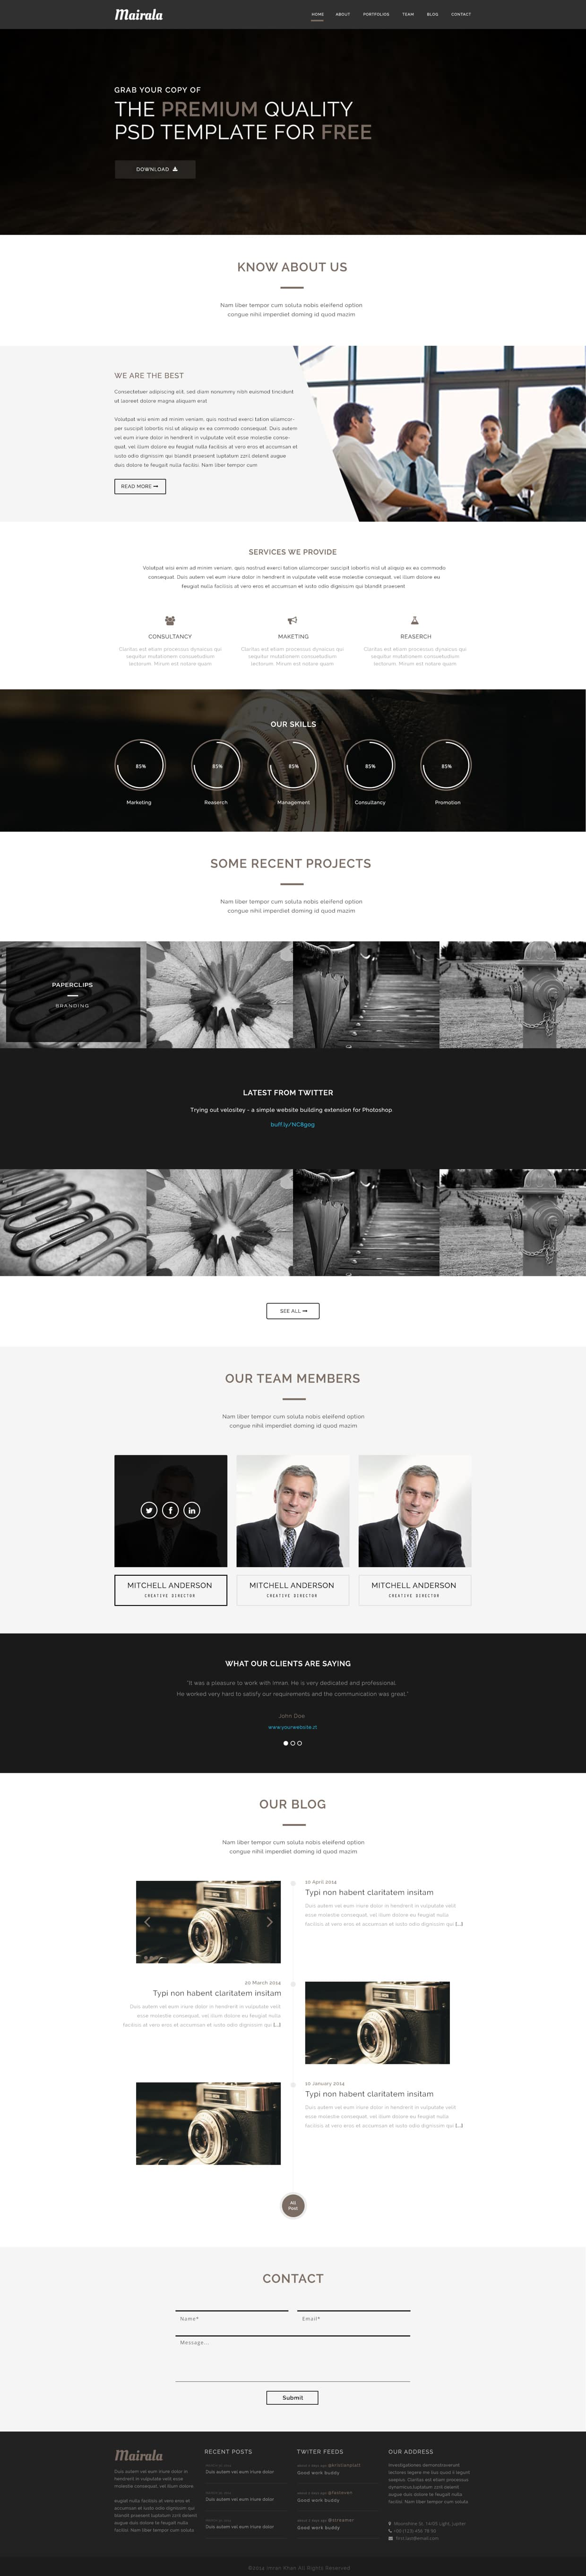 Mairala - Free One Page Corporate Agency Template PSD